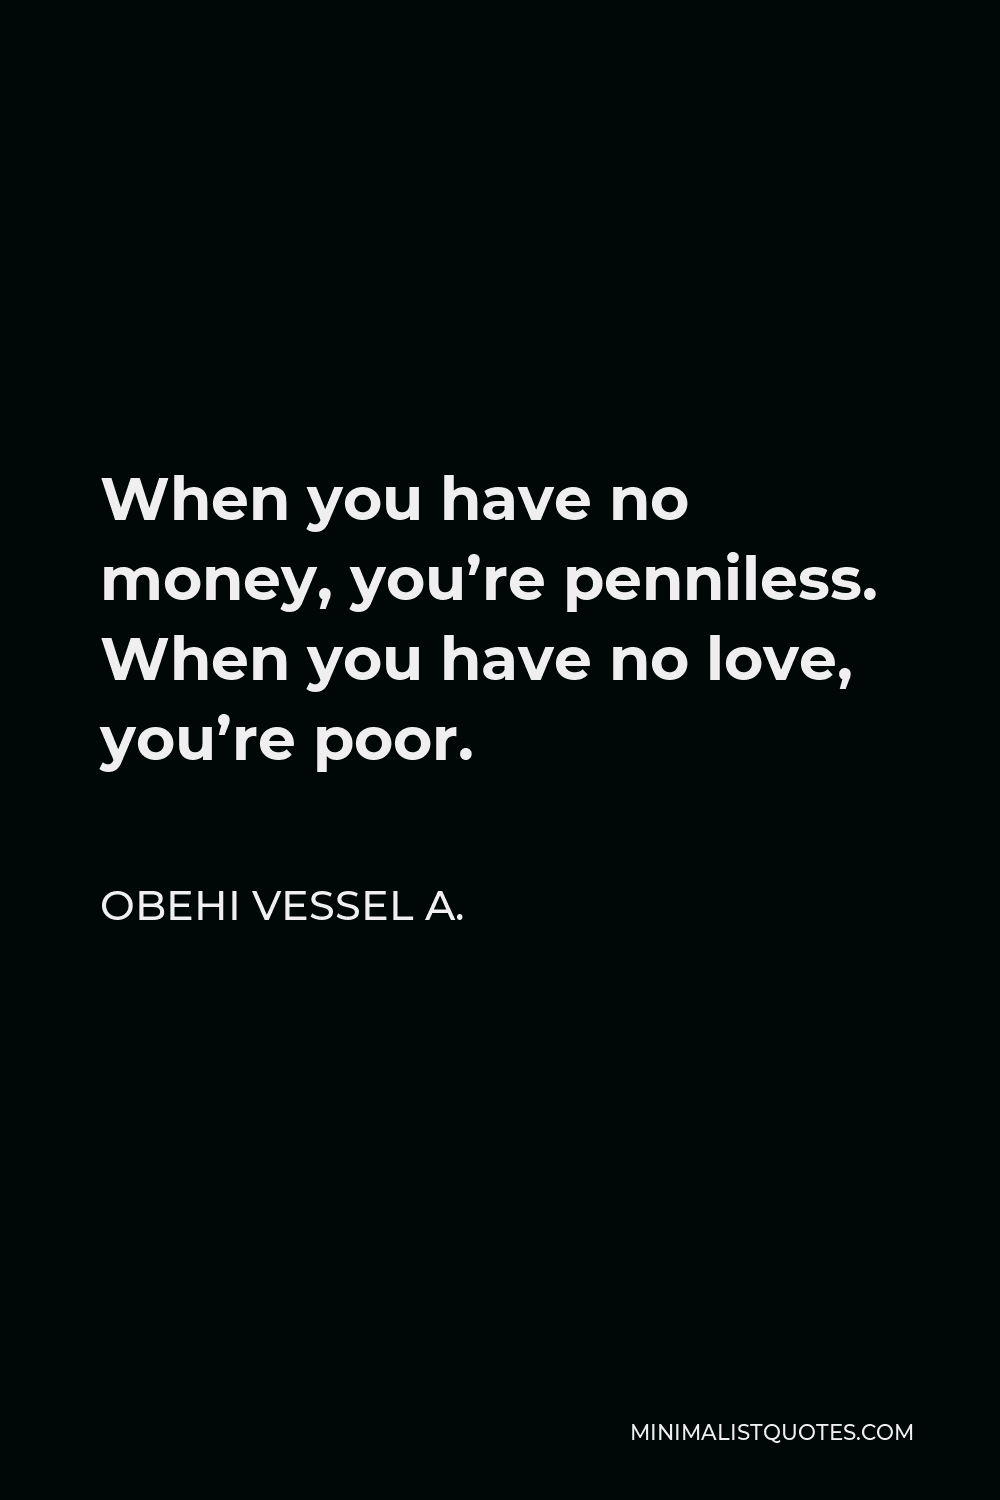 Obehi Vessel A. Quote - When you have no money, you're penniless. When you have no love, you're poor.